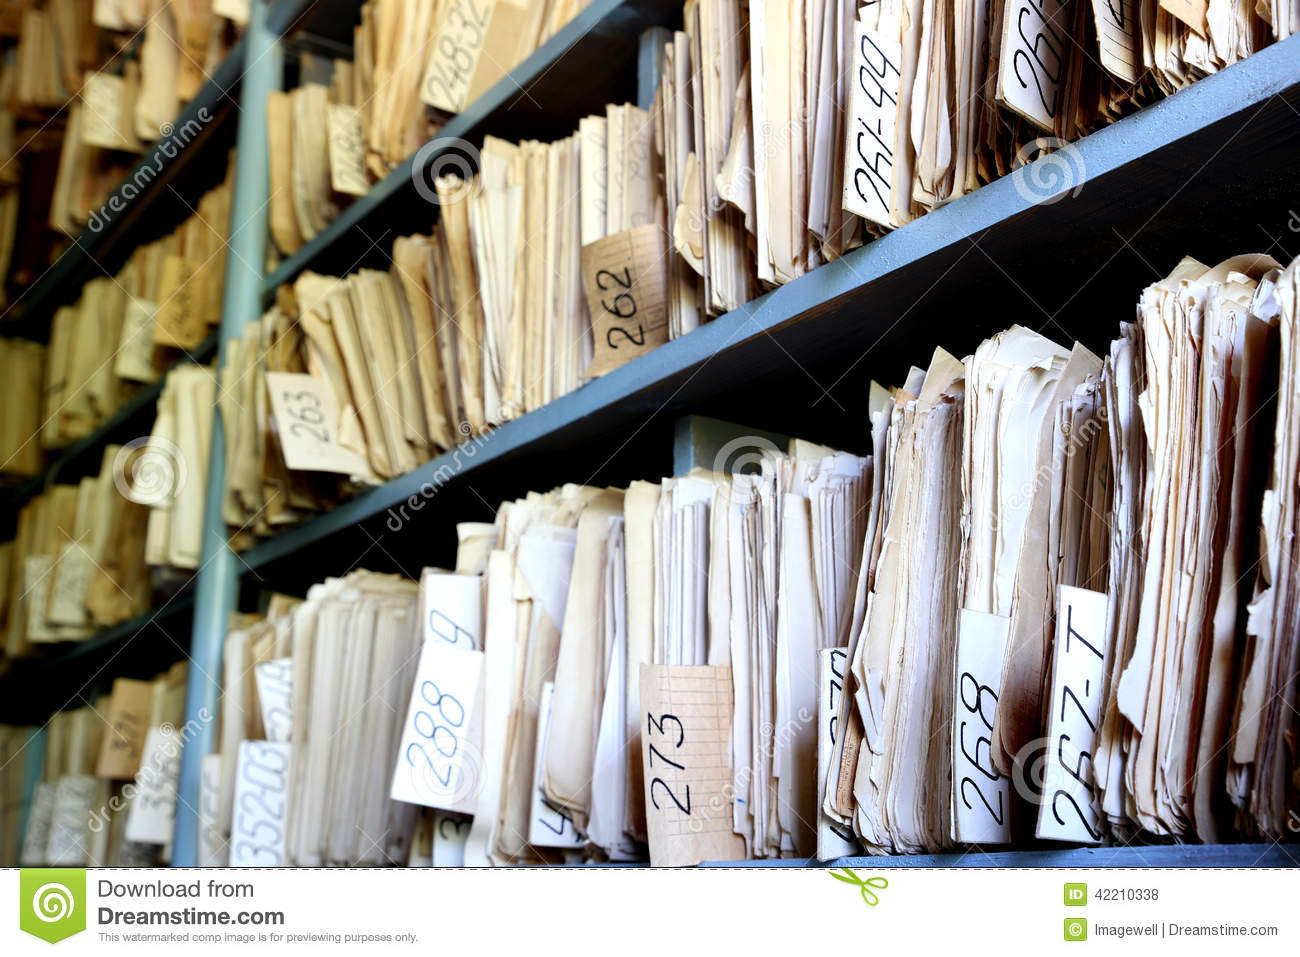 Shelves full of files in a messy old-fashioned archive.